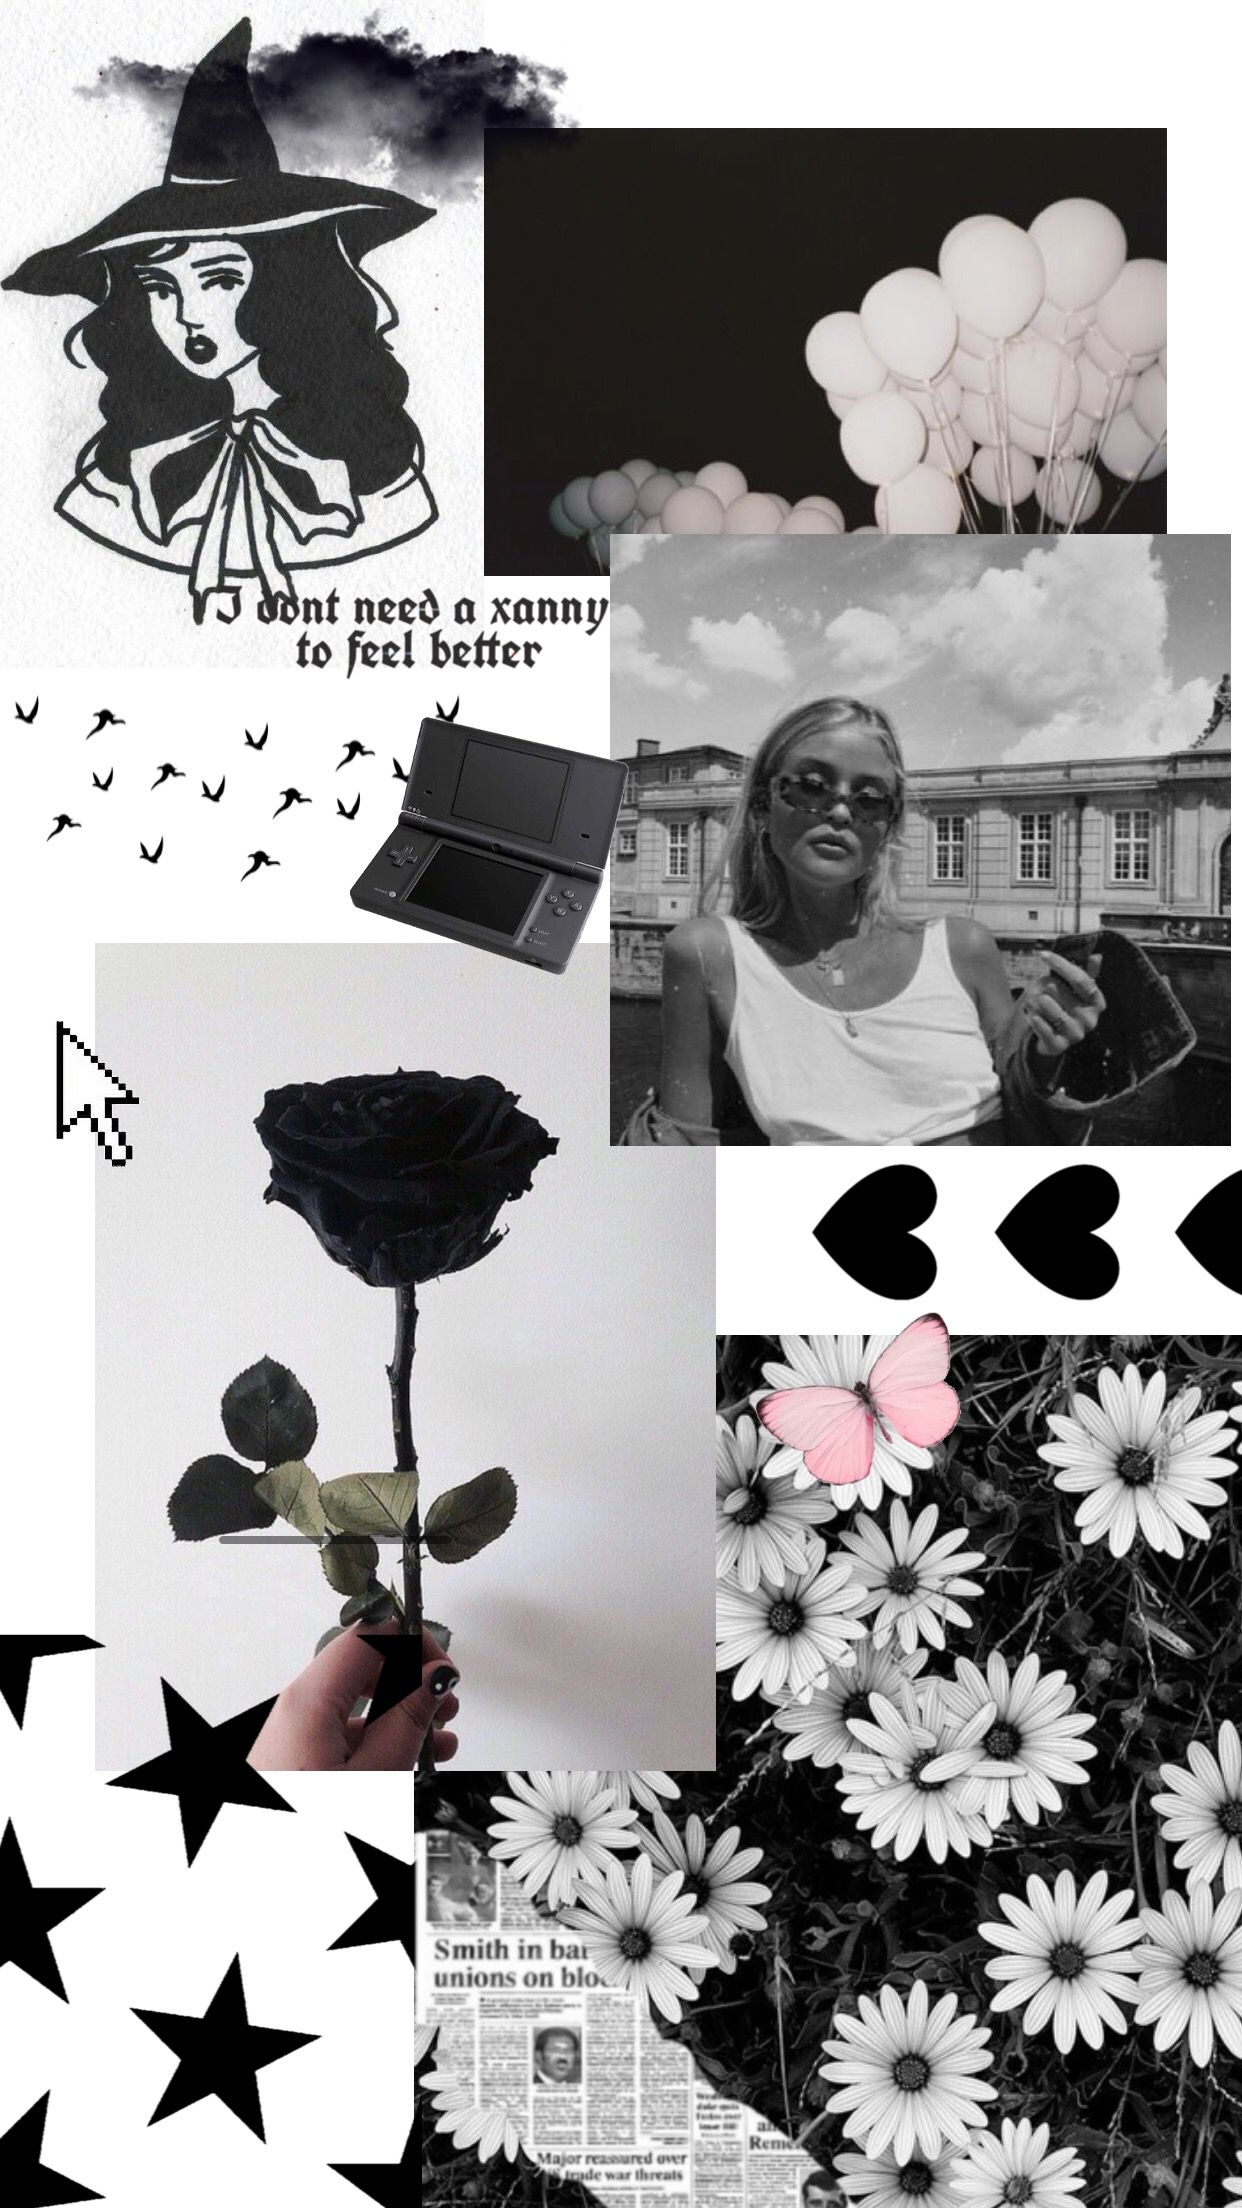 Black And White Aesthetic Iphone Wallpaper Aesthetic Iphone Wallpaper Wallpaper Pink And White Black Aesthetic Wallpaper Iphone aesthetic iphone black and white